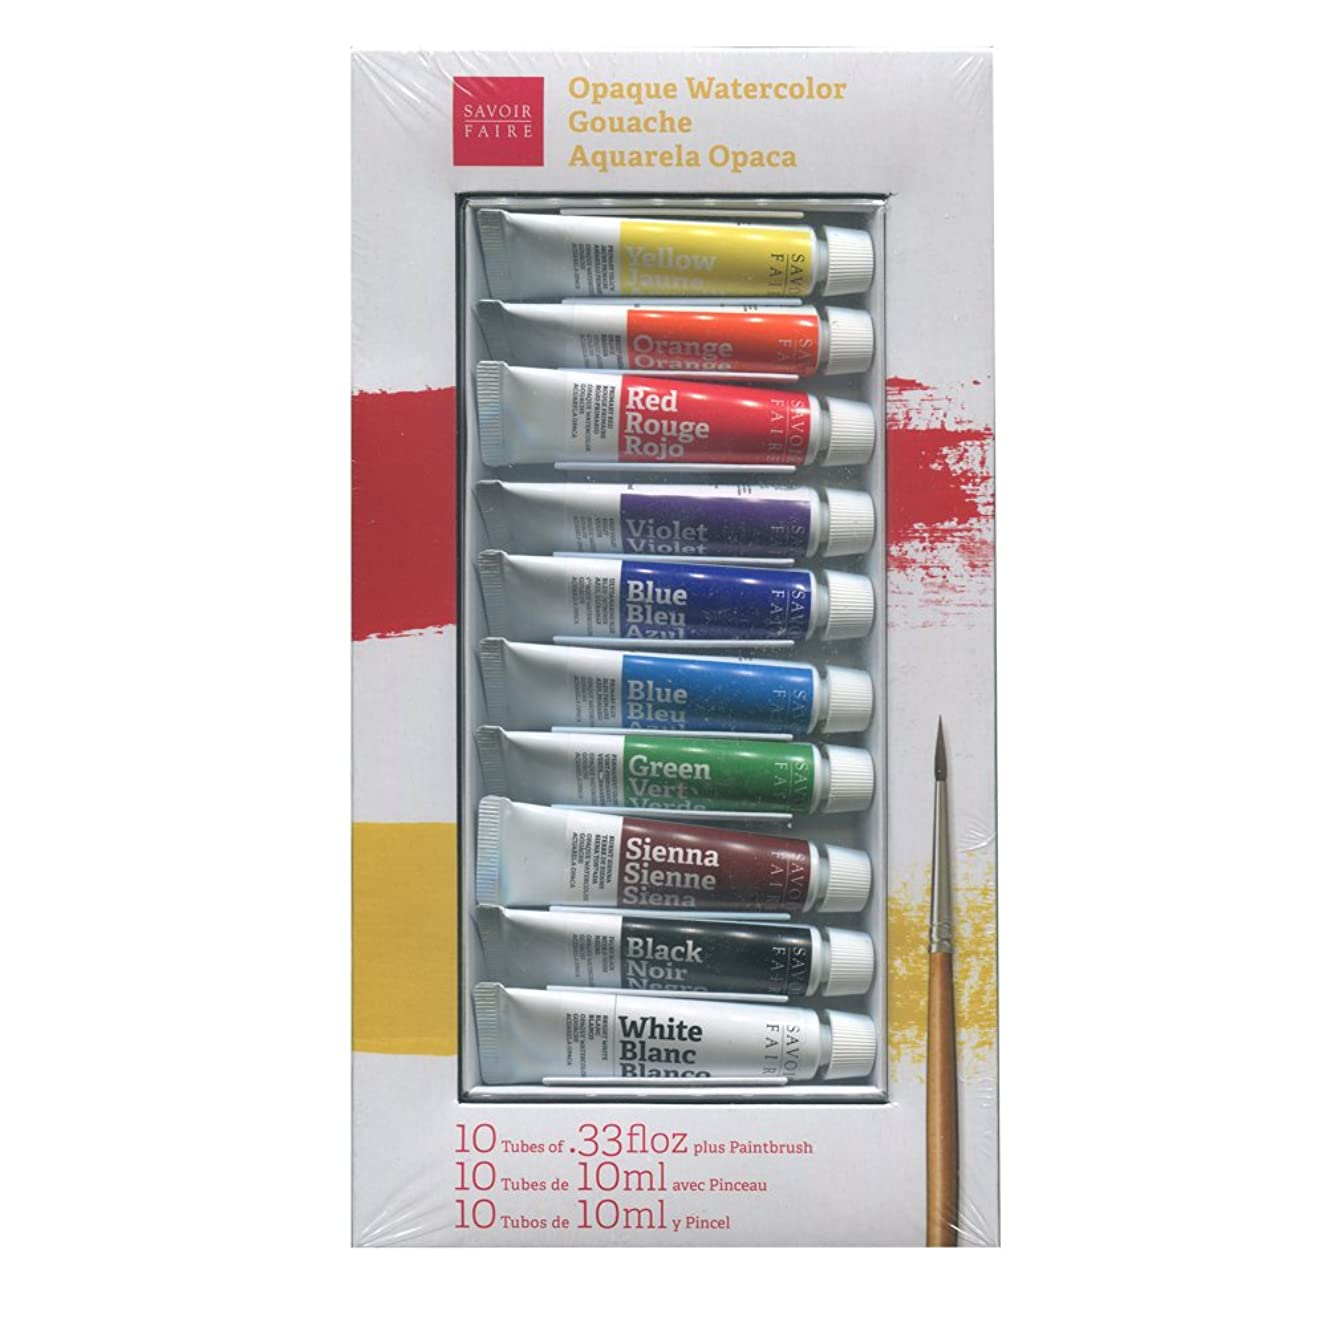 Savior-Faire The French School Opaque Watercolor Gouache Tube Sets set of 10 in case with brush